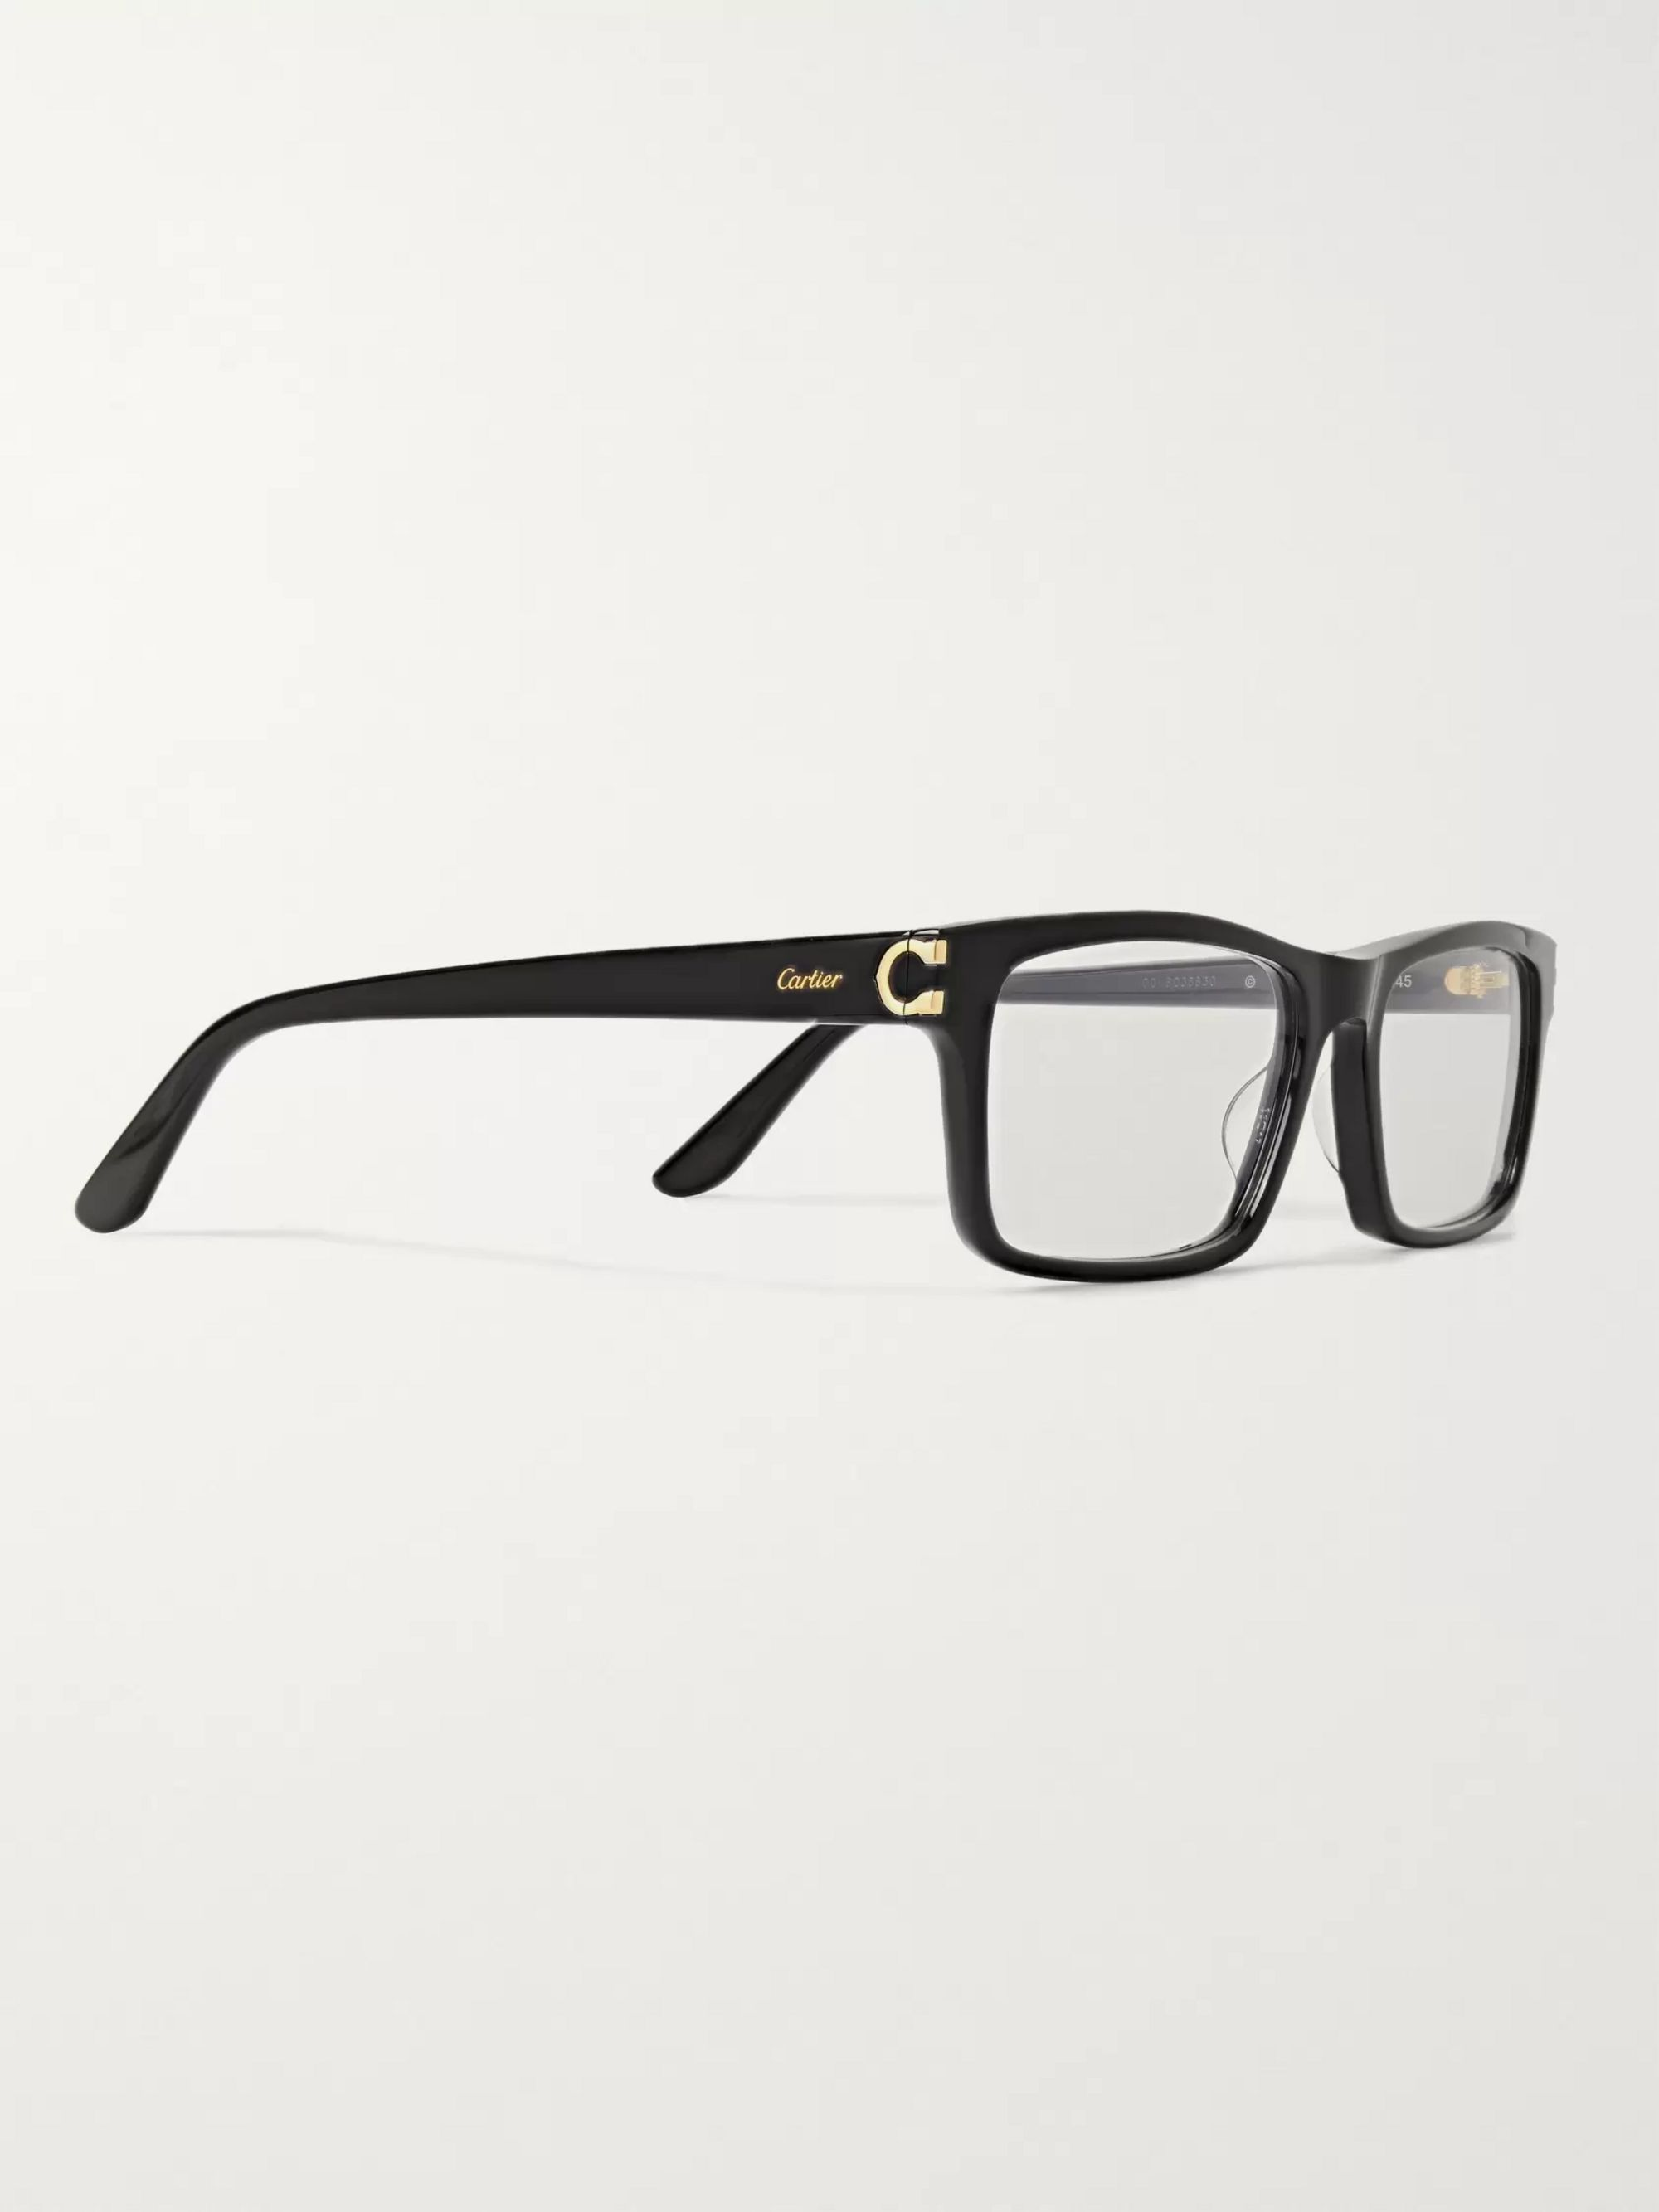 Cartier Eyewear Rectangle-Frame Acetate Optical Glasses